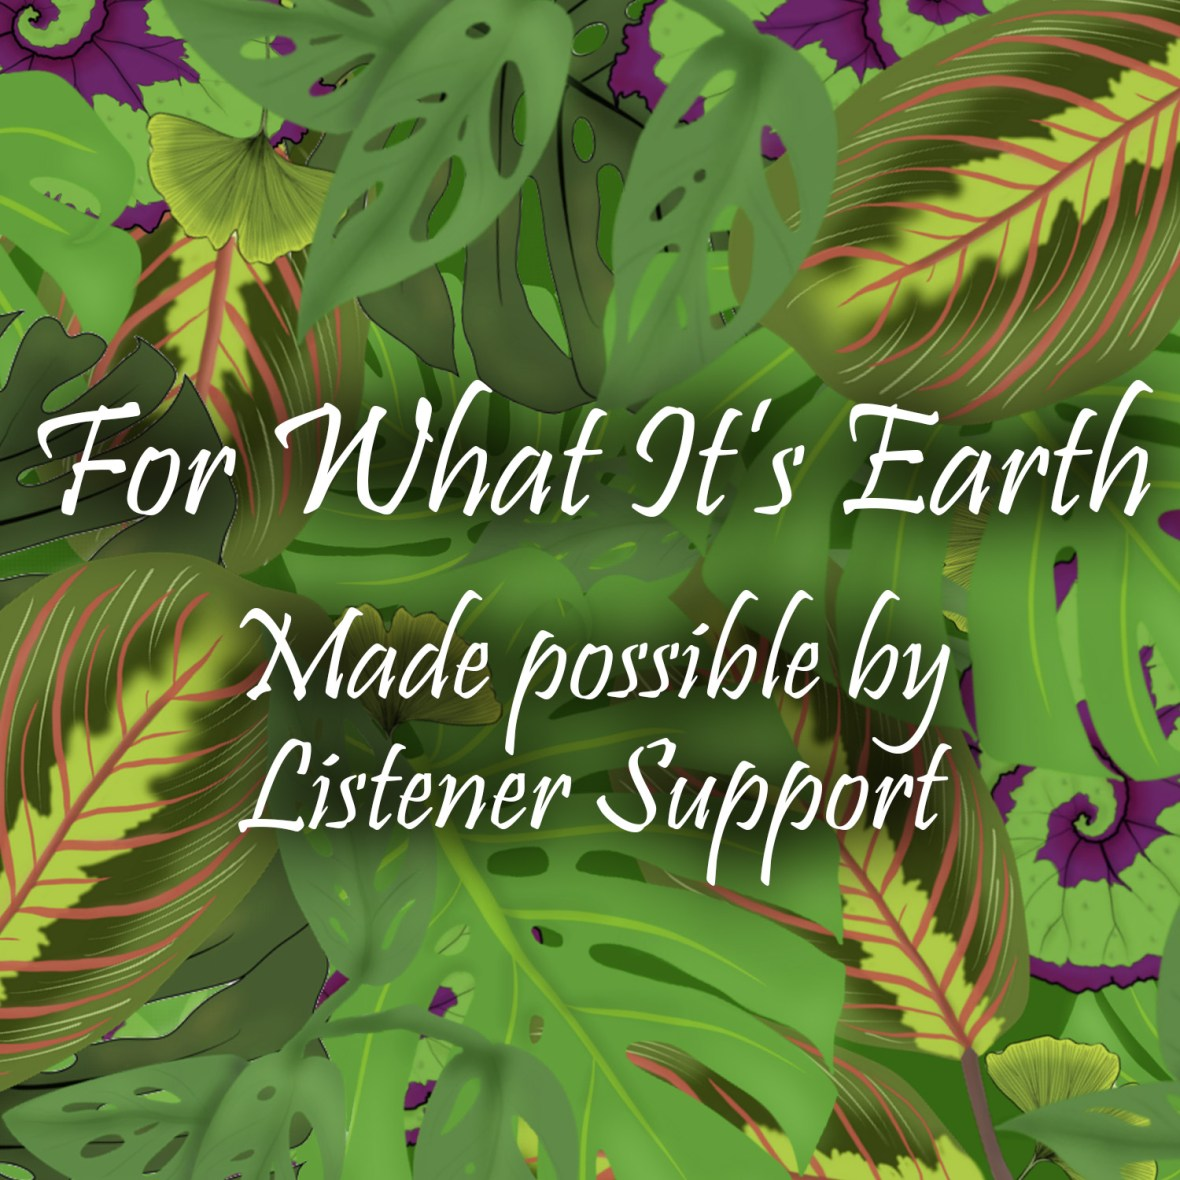 For What It's Earth podcast possible by listener support